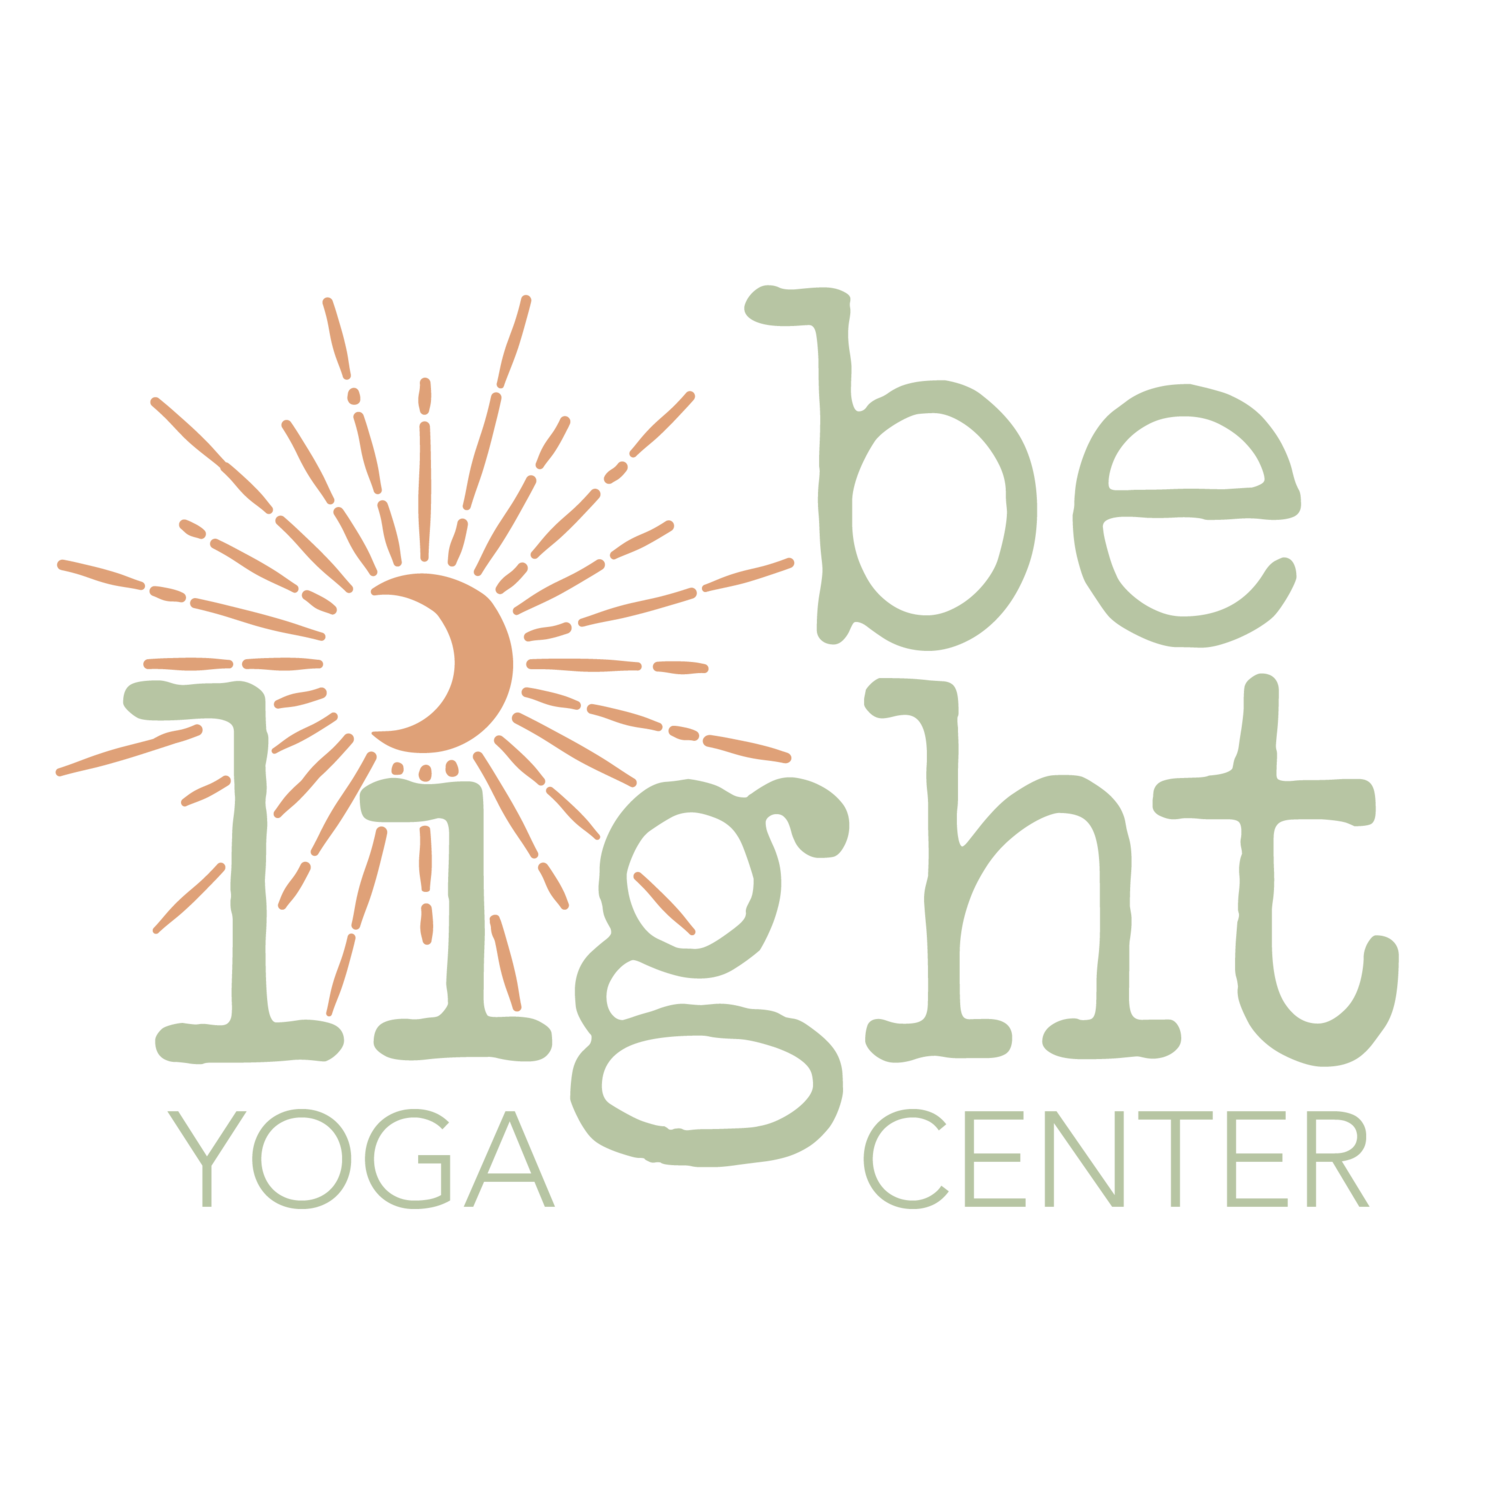 Be Light Yoga Center